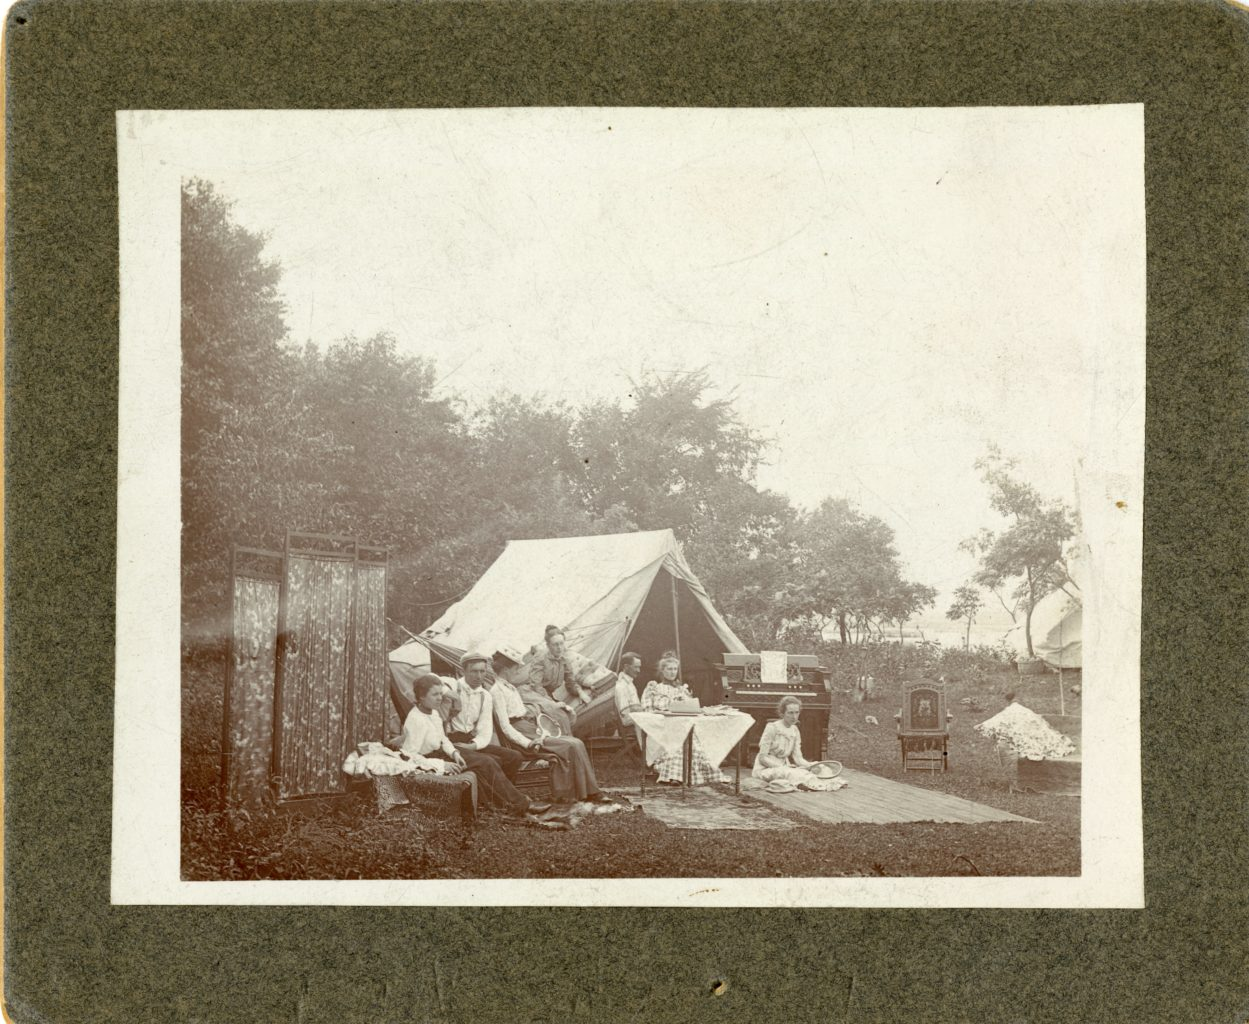 Five women and two men sit outside with tent and rugs. Some holding rackets.